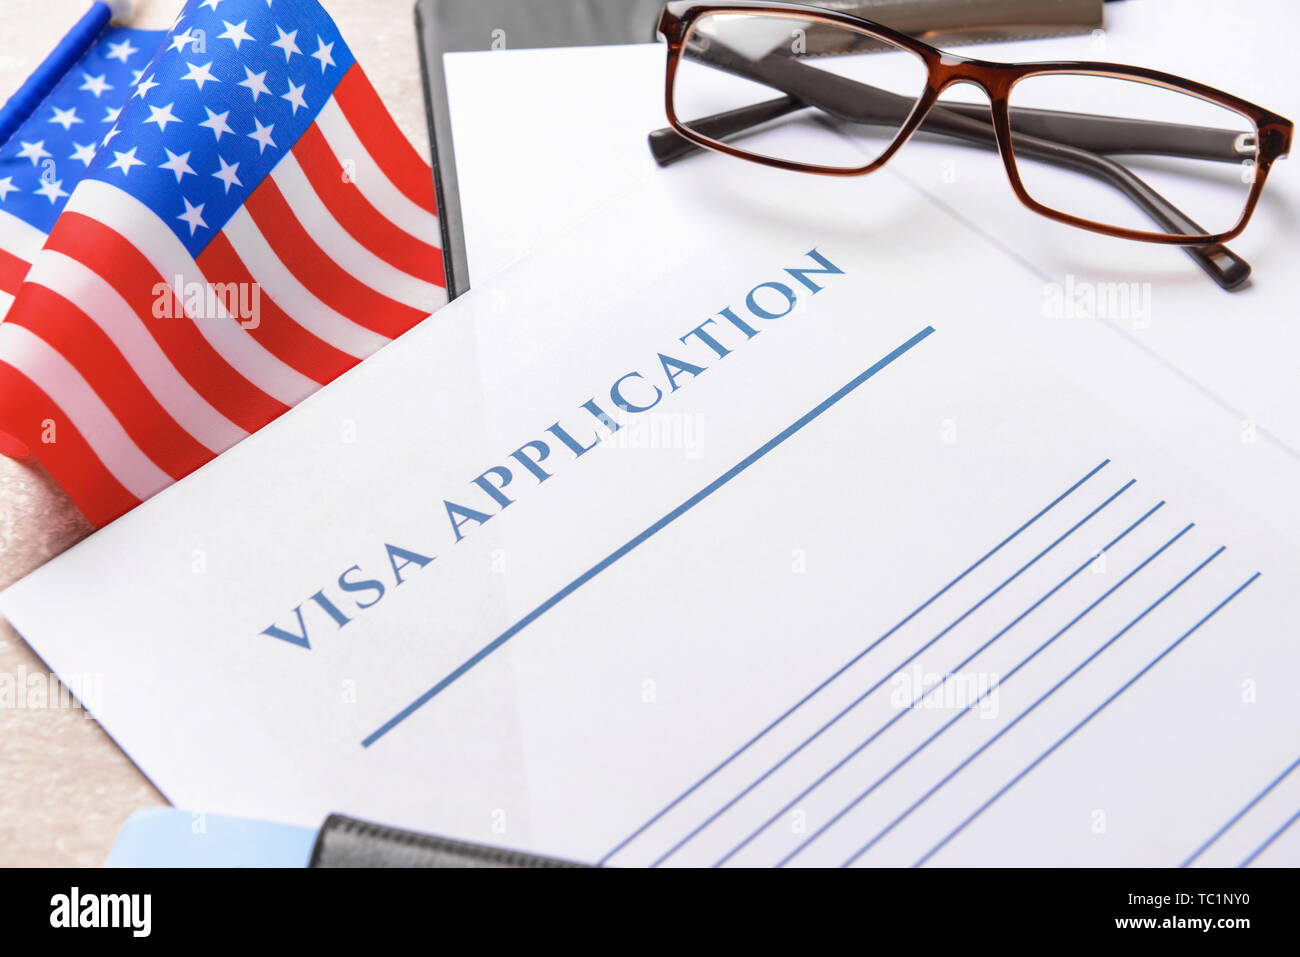 Visa Application Form And Usa Flag On Table Closeup Concept Of Immigration Stock Photo Alamy